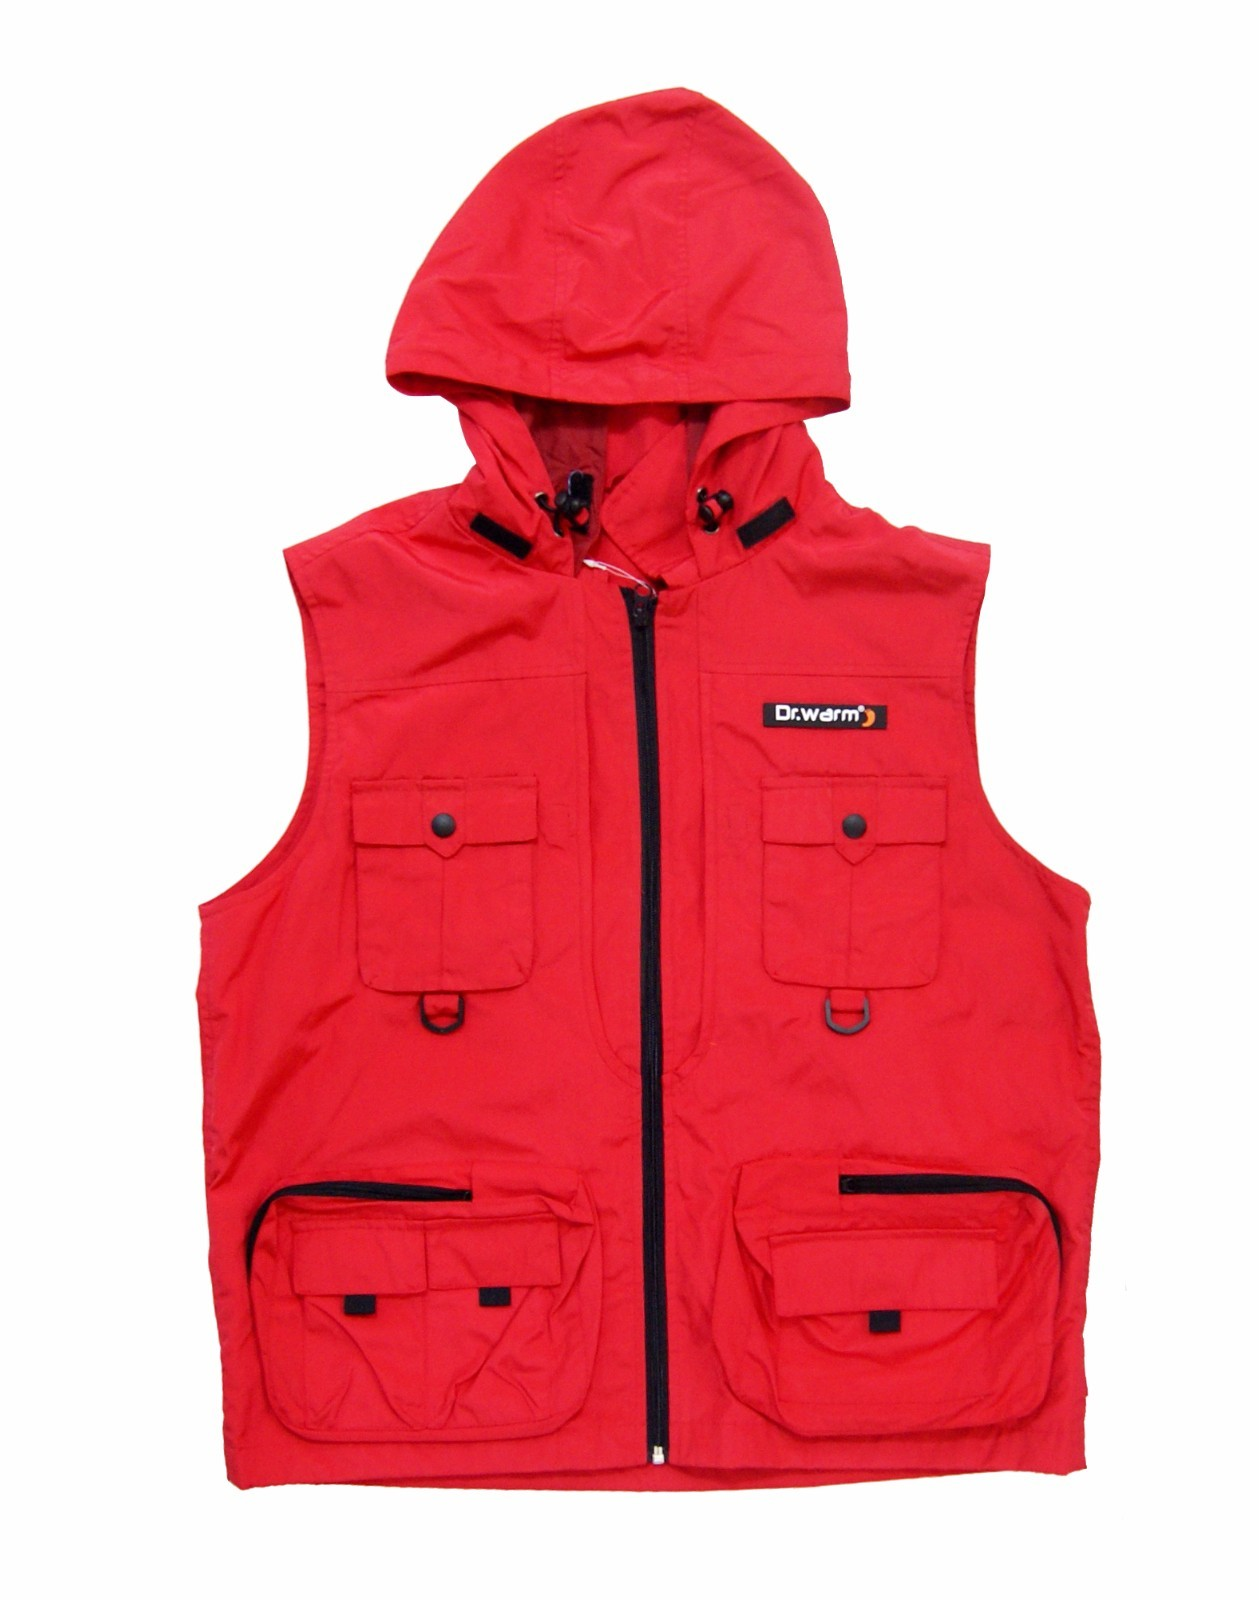 Dr. Warm fishing best women's heated vest with prined pattern for home